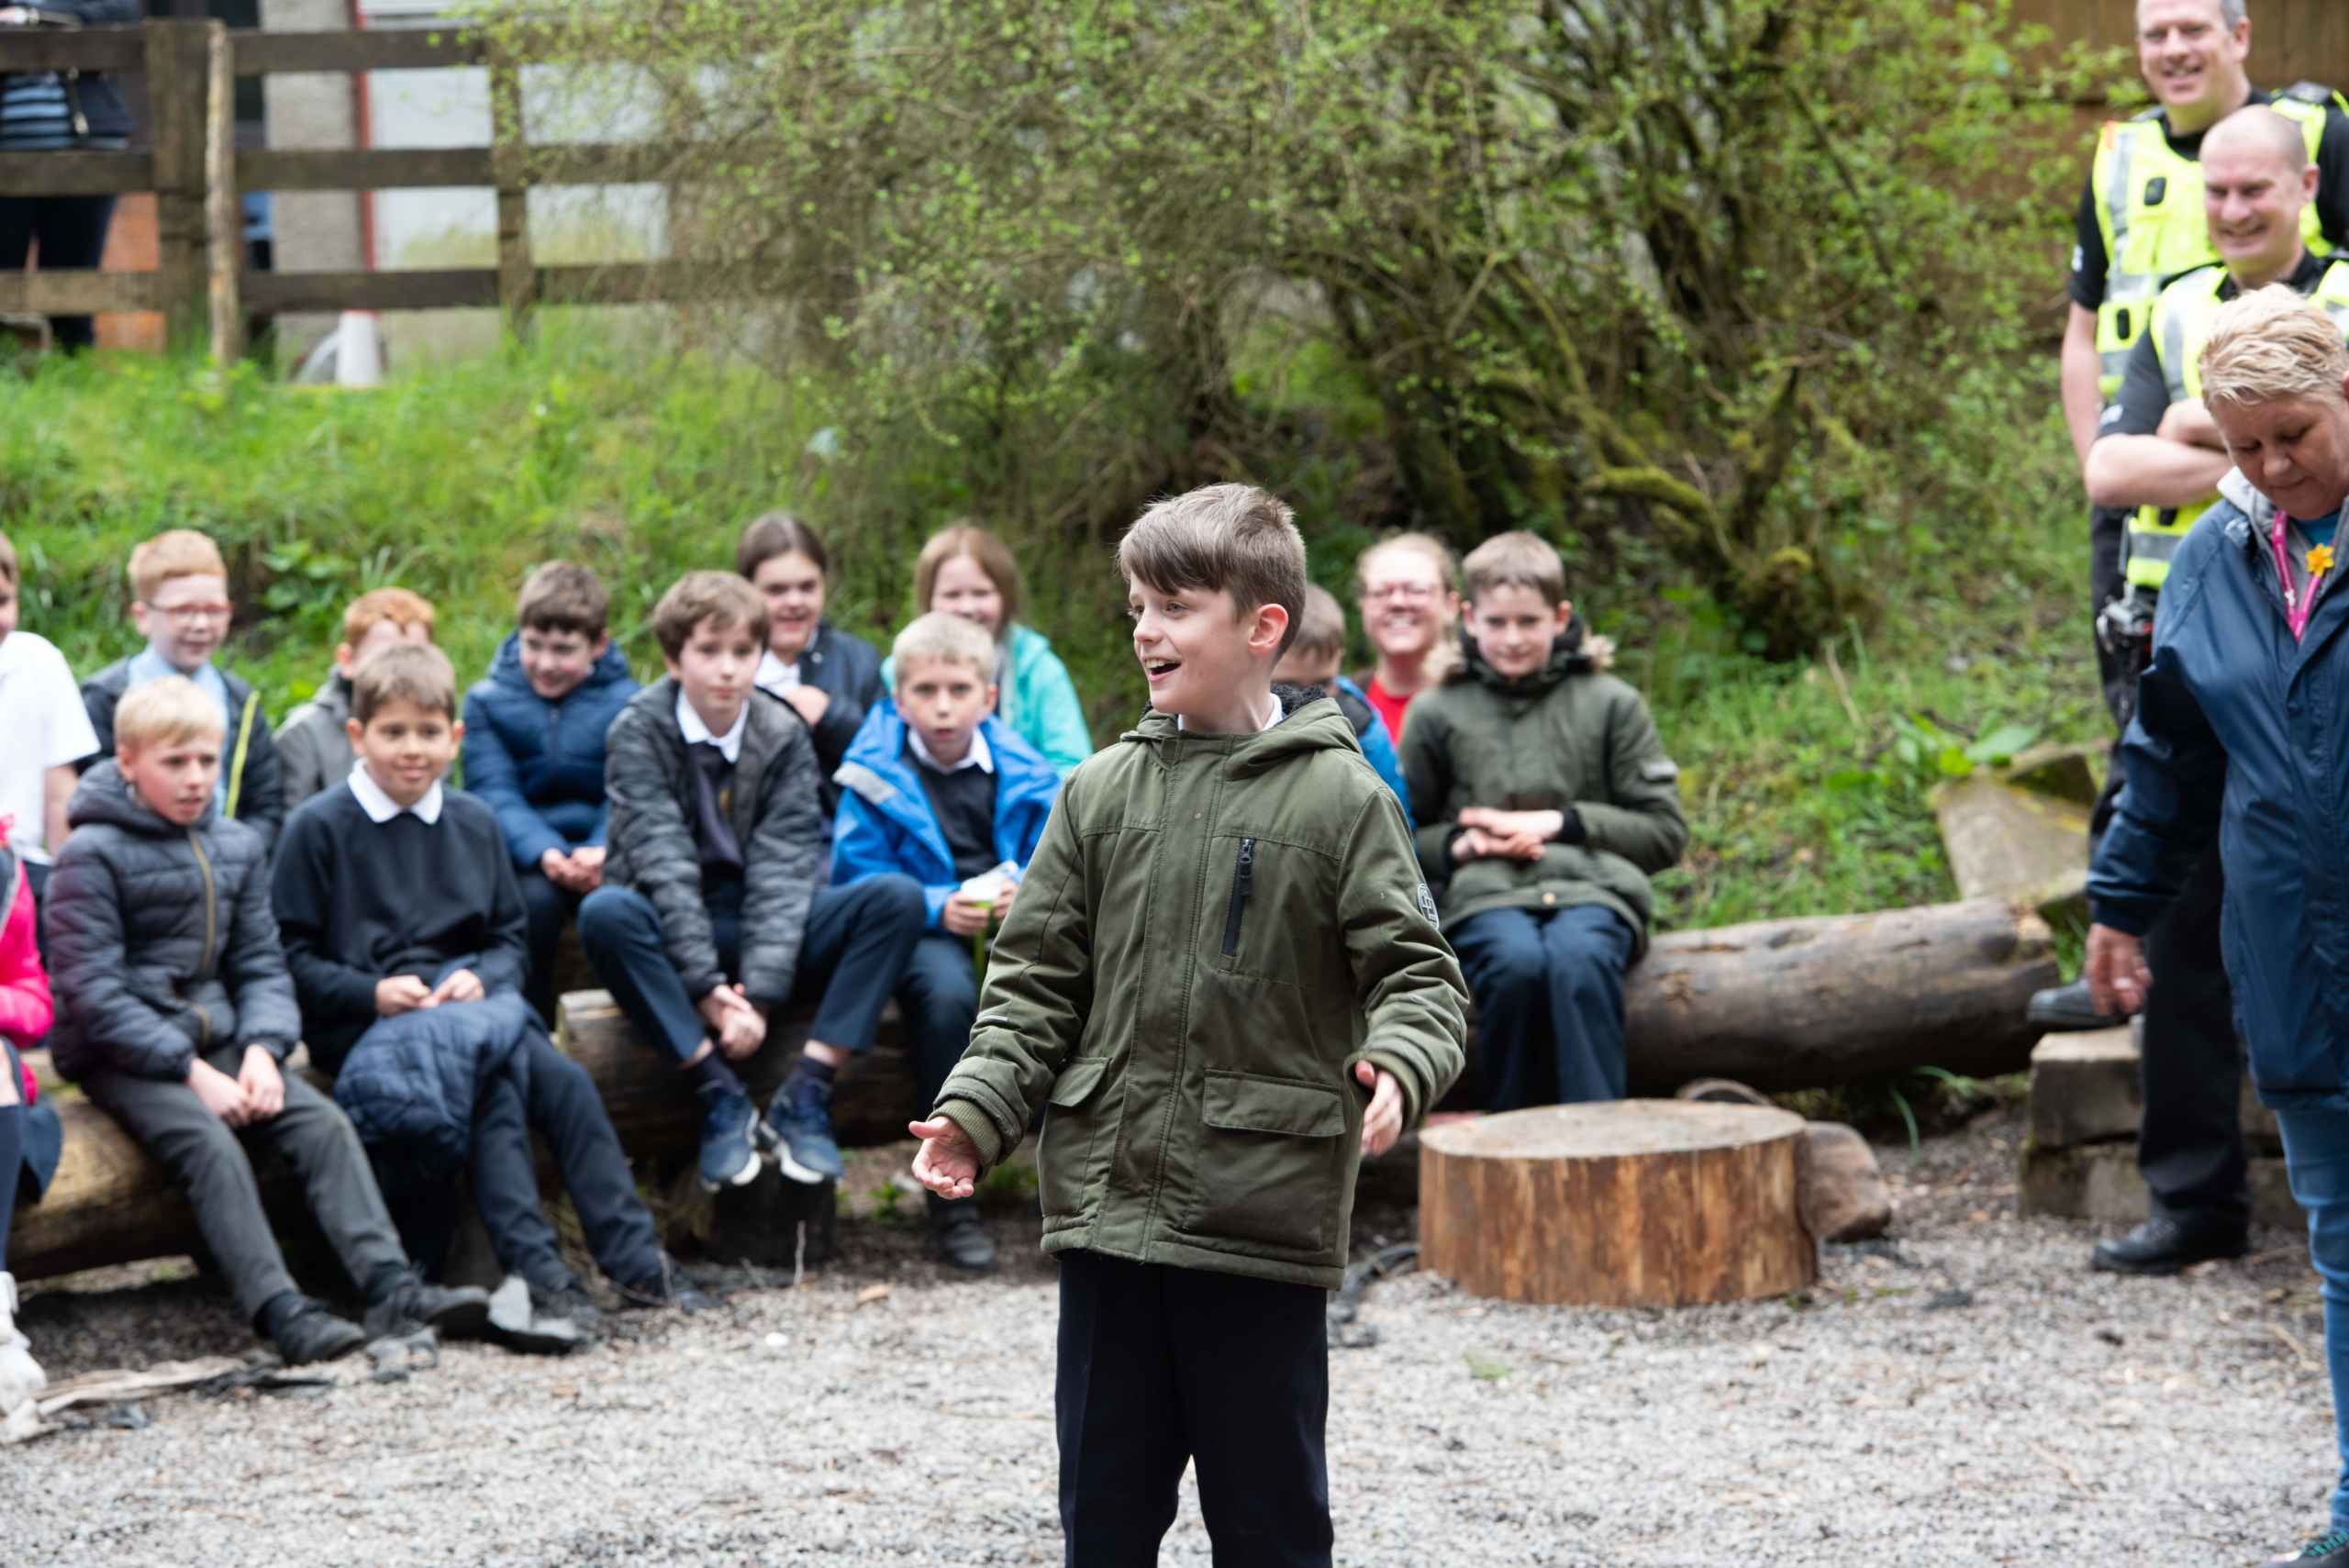 A pupil leads the group with a song